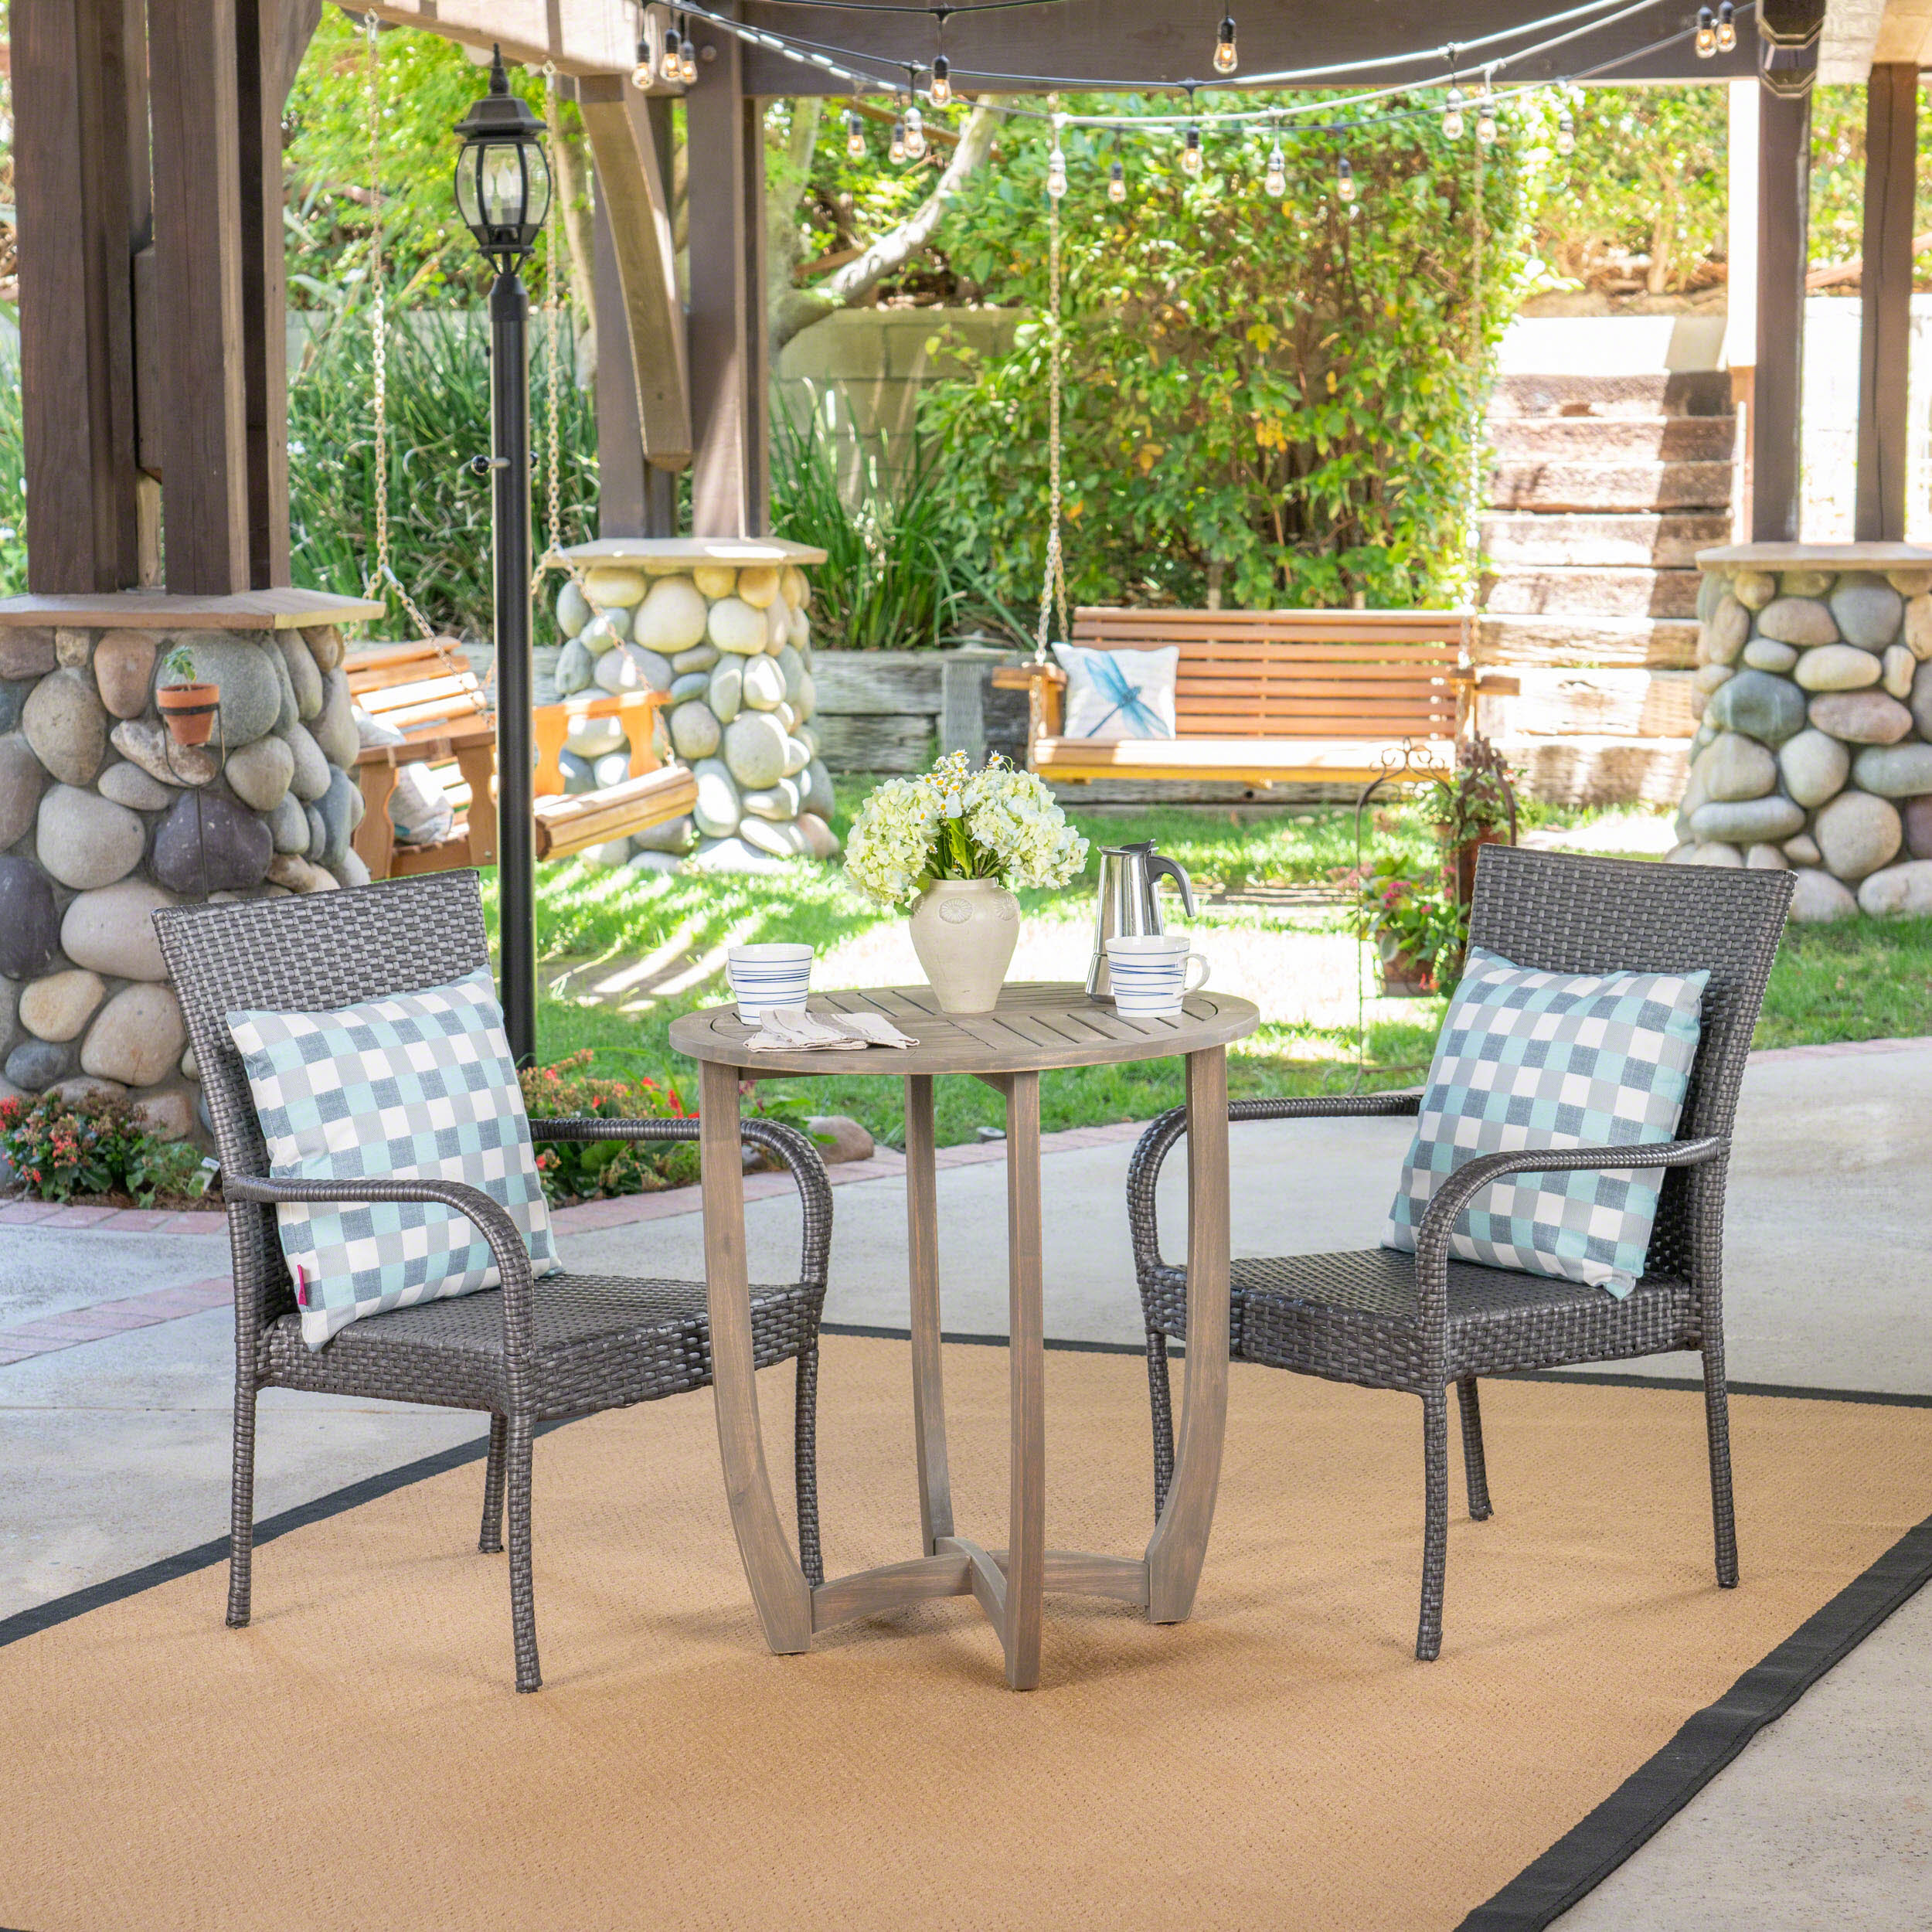 Albert Outdoor 3 Piece Wood and Wicker Bistro Set, Gray and Gray